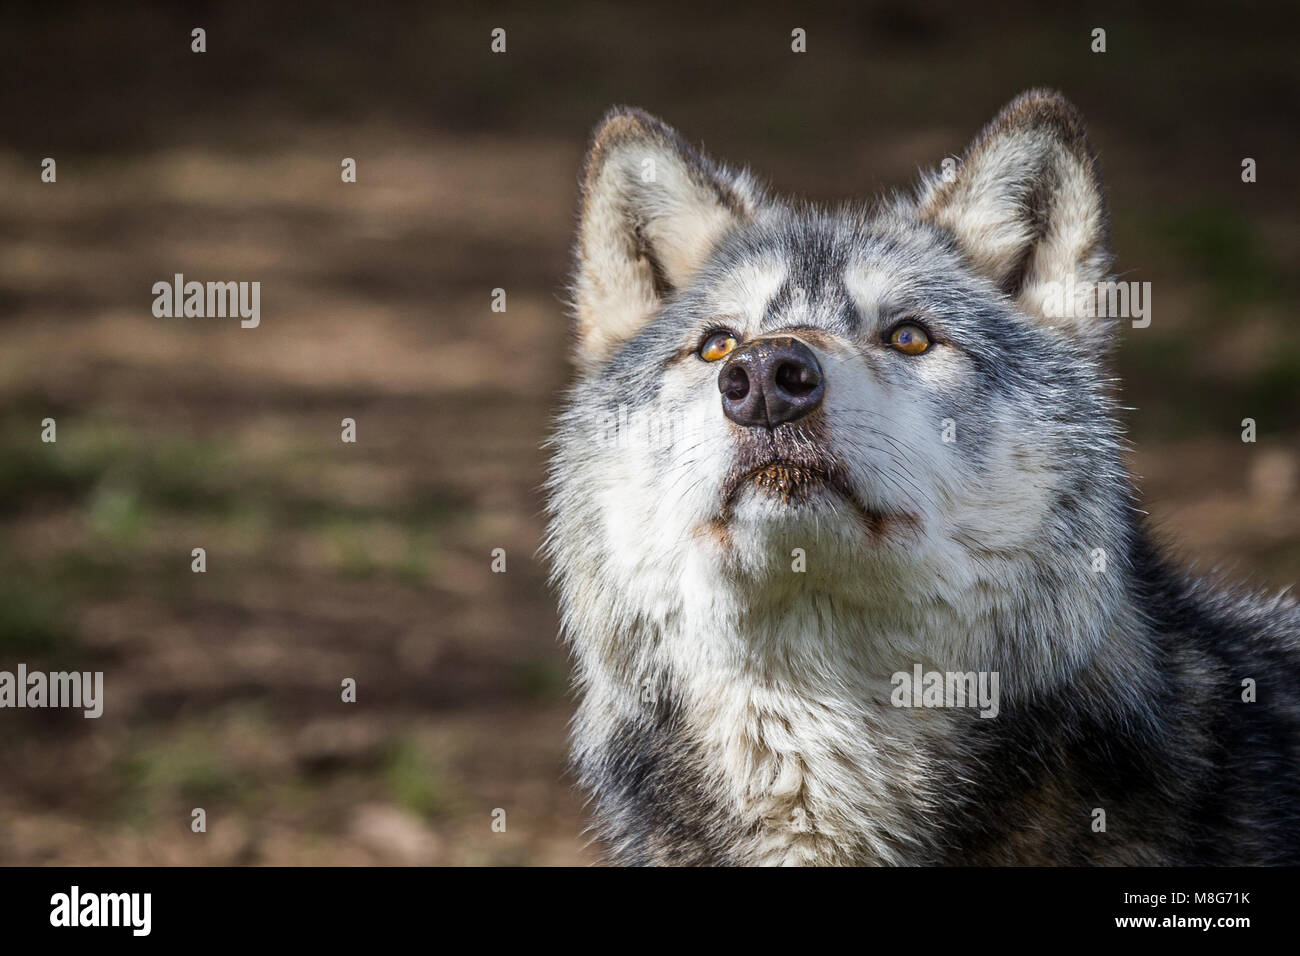 Wolf pictured in U conservation society, Wolves are held in large areas and well looked after, They have saved many - Stock Image